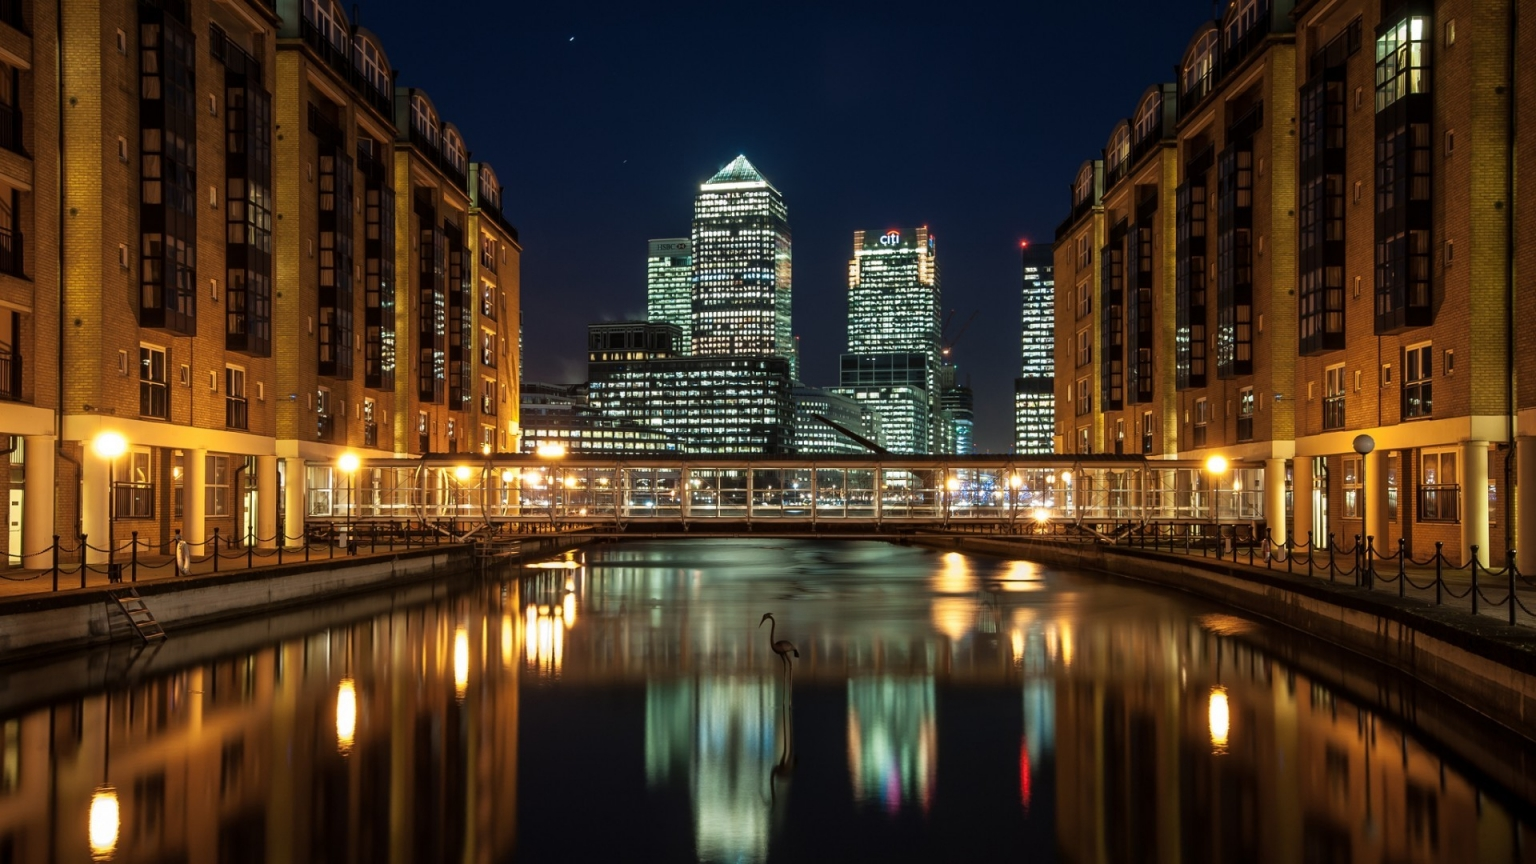 Canary Wharf View for 1536 x 864 HDTV resolution